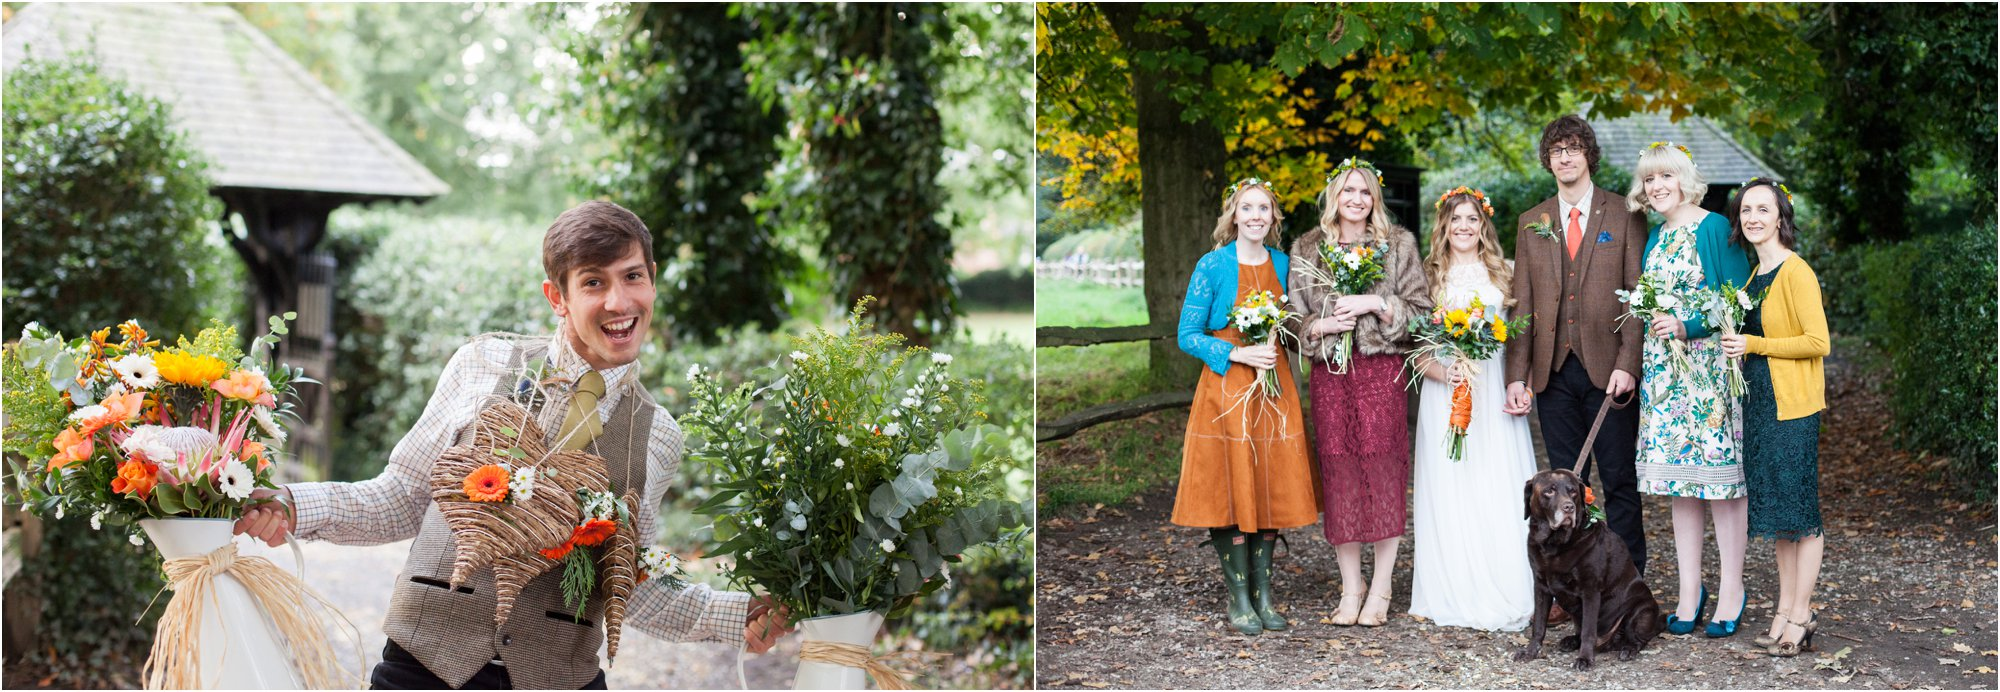 Styal_Wedding_Wilmslow_Cheshire_Autumn_Colourful_photography_0105.jpg